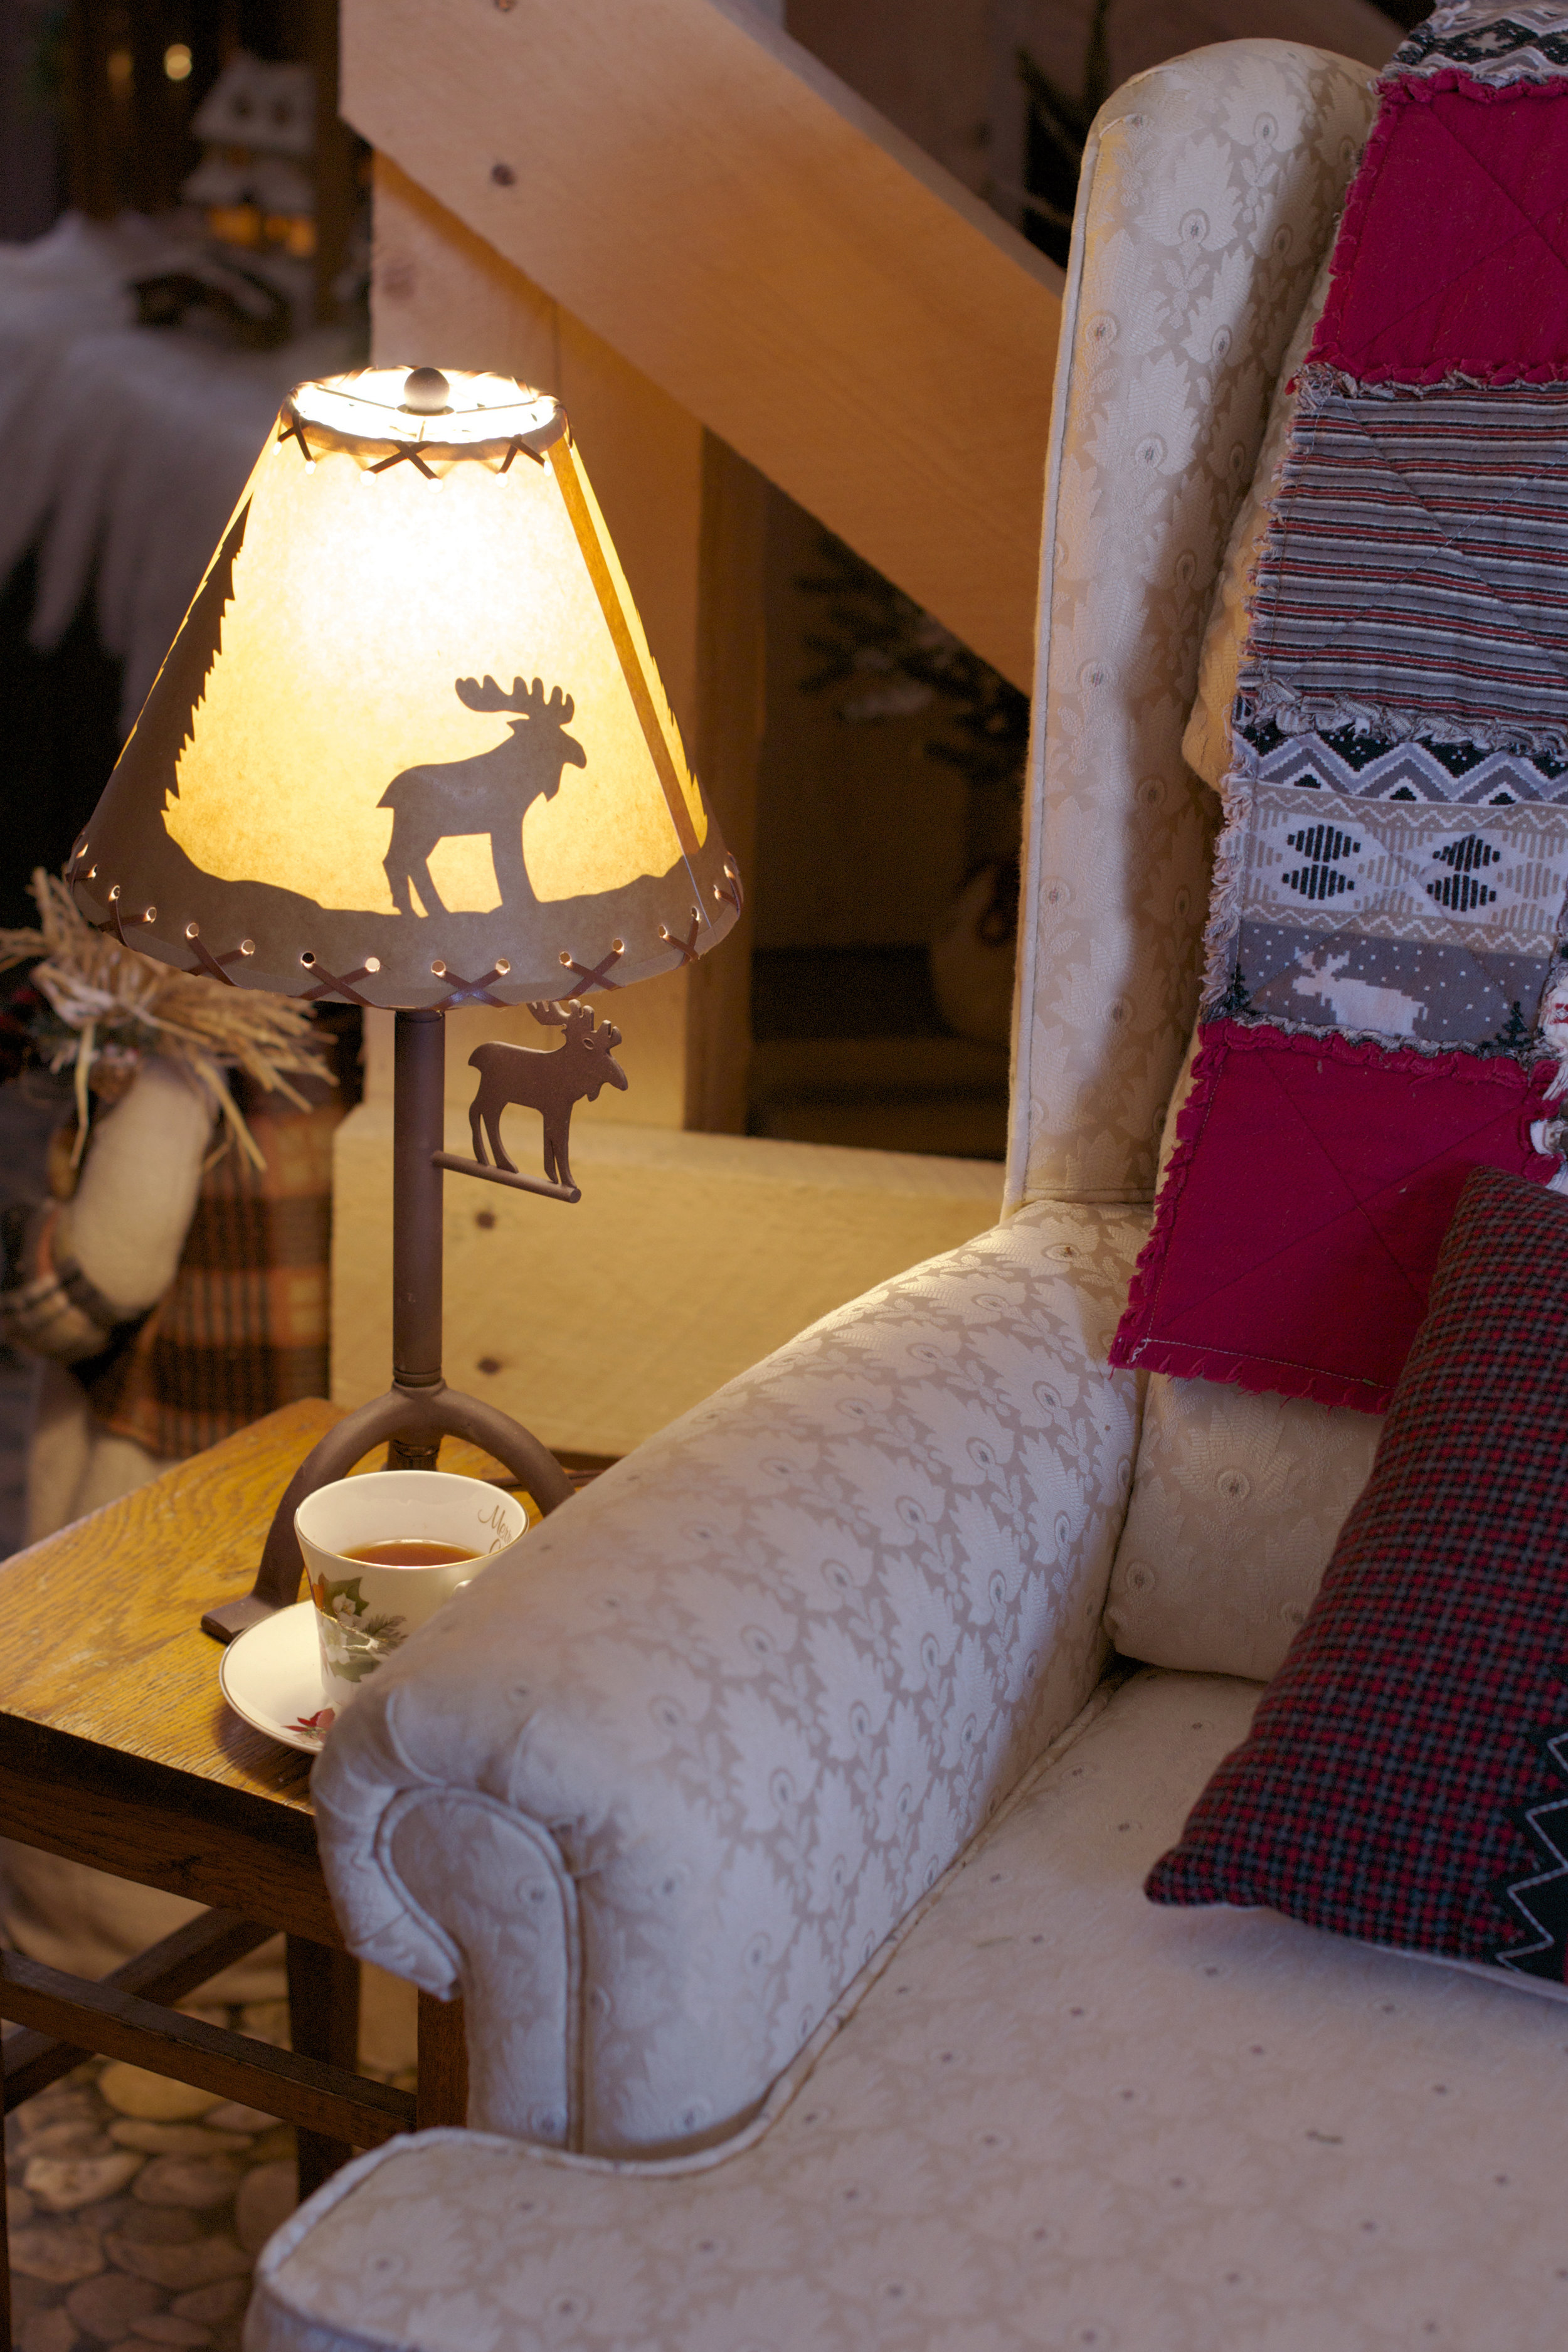 chair-with-moose-lamp-and-tea.jpg